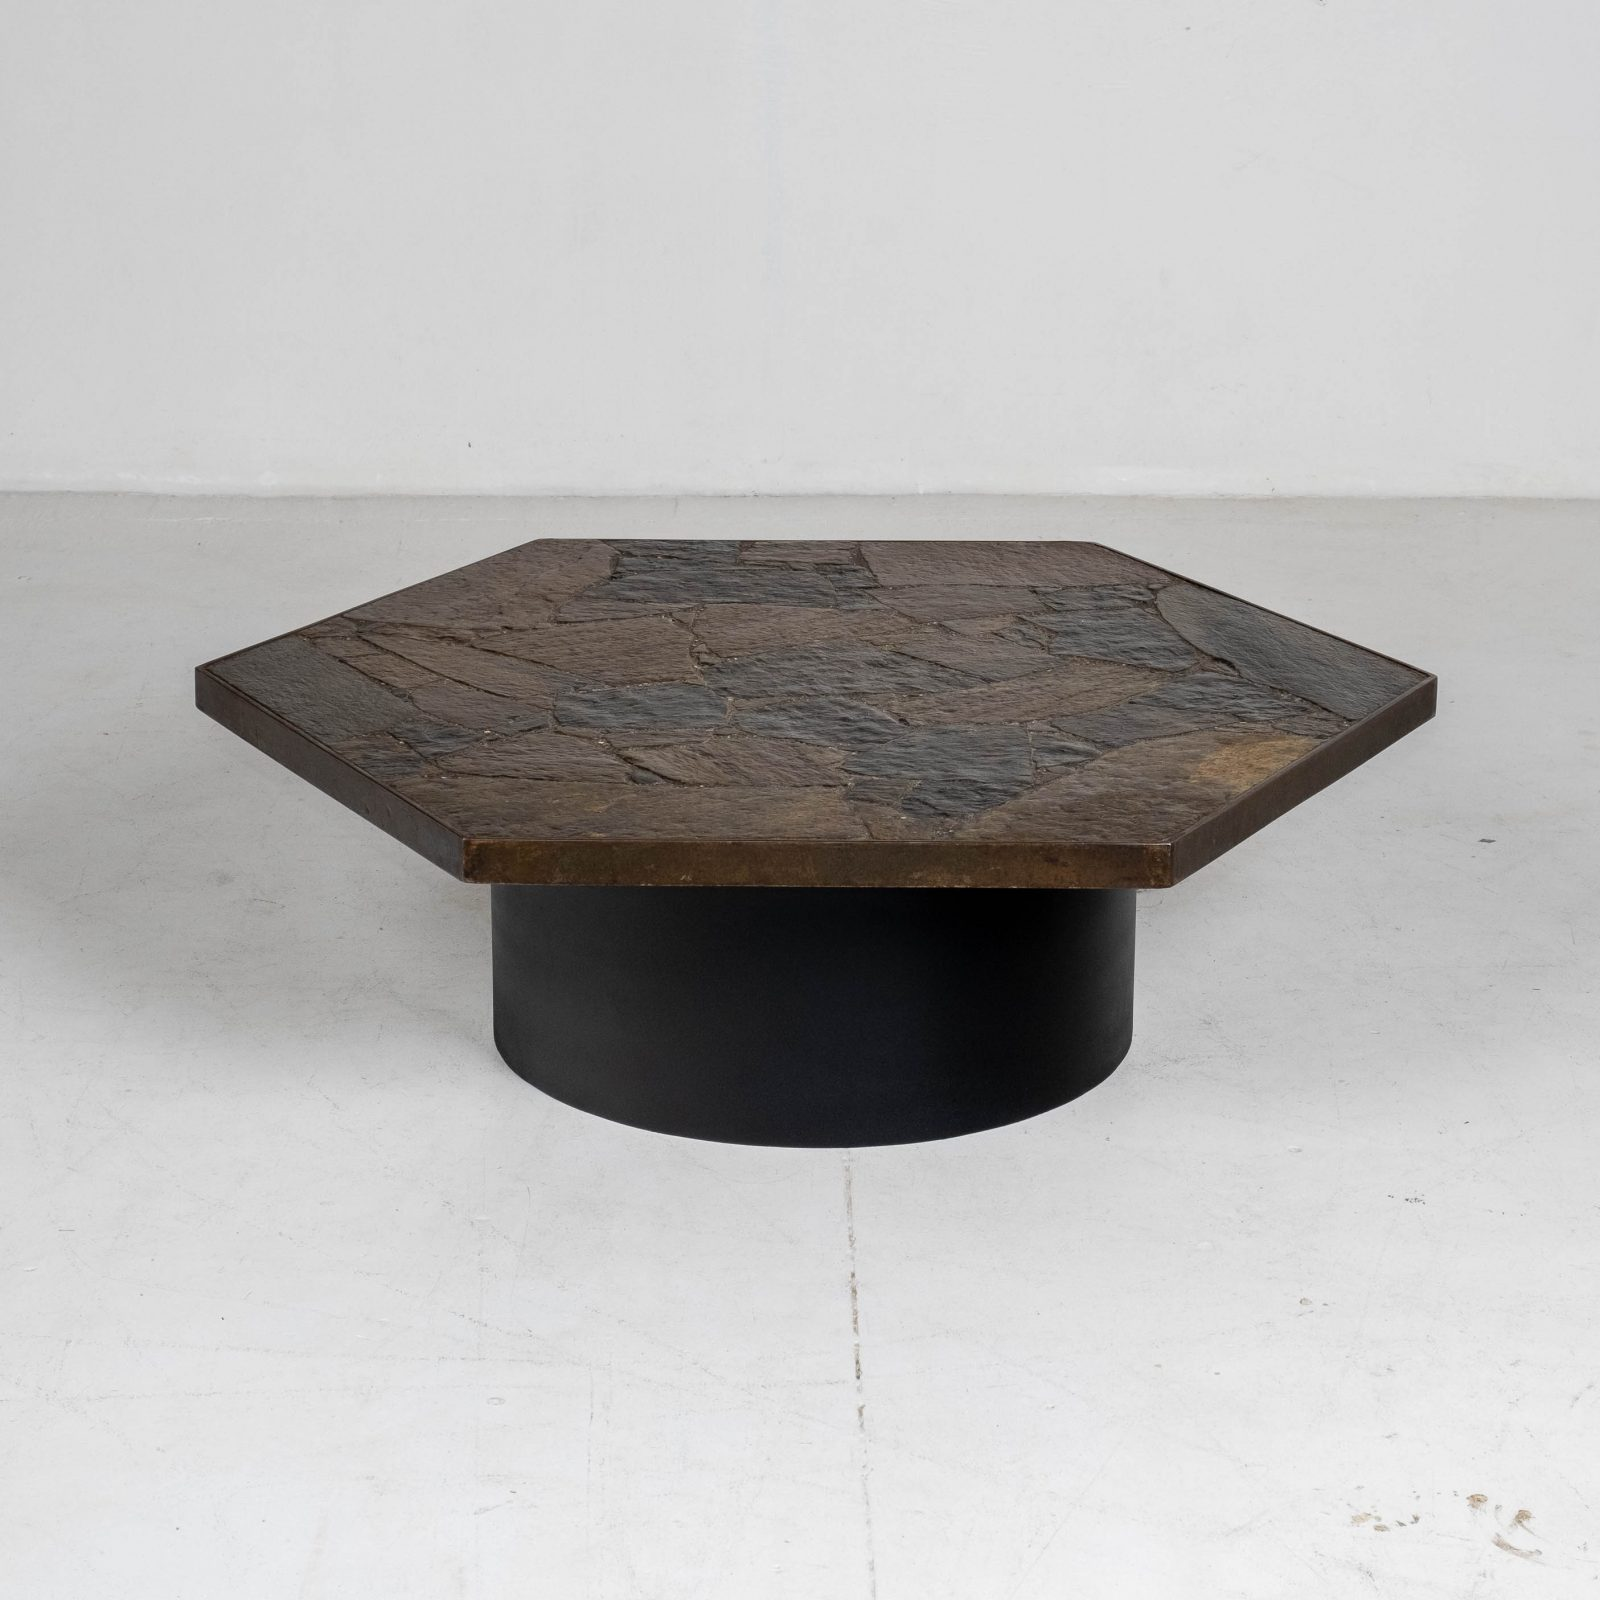 Hexagonal Coffee Table In The Style Of Paul Kingma With Stone Top And Metal Edge, 1970s, The Netherlands Hero 00002